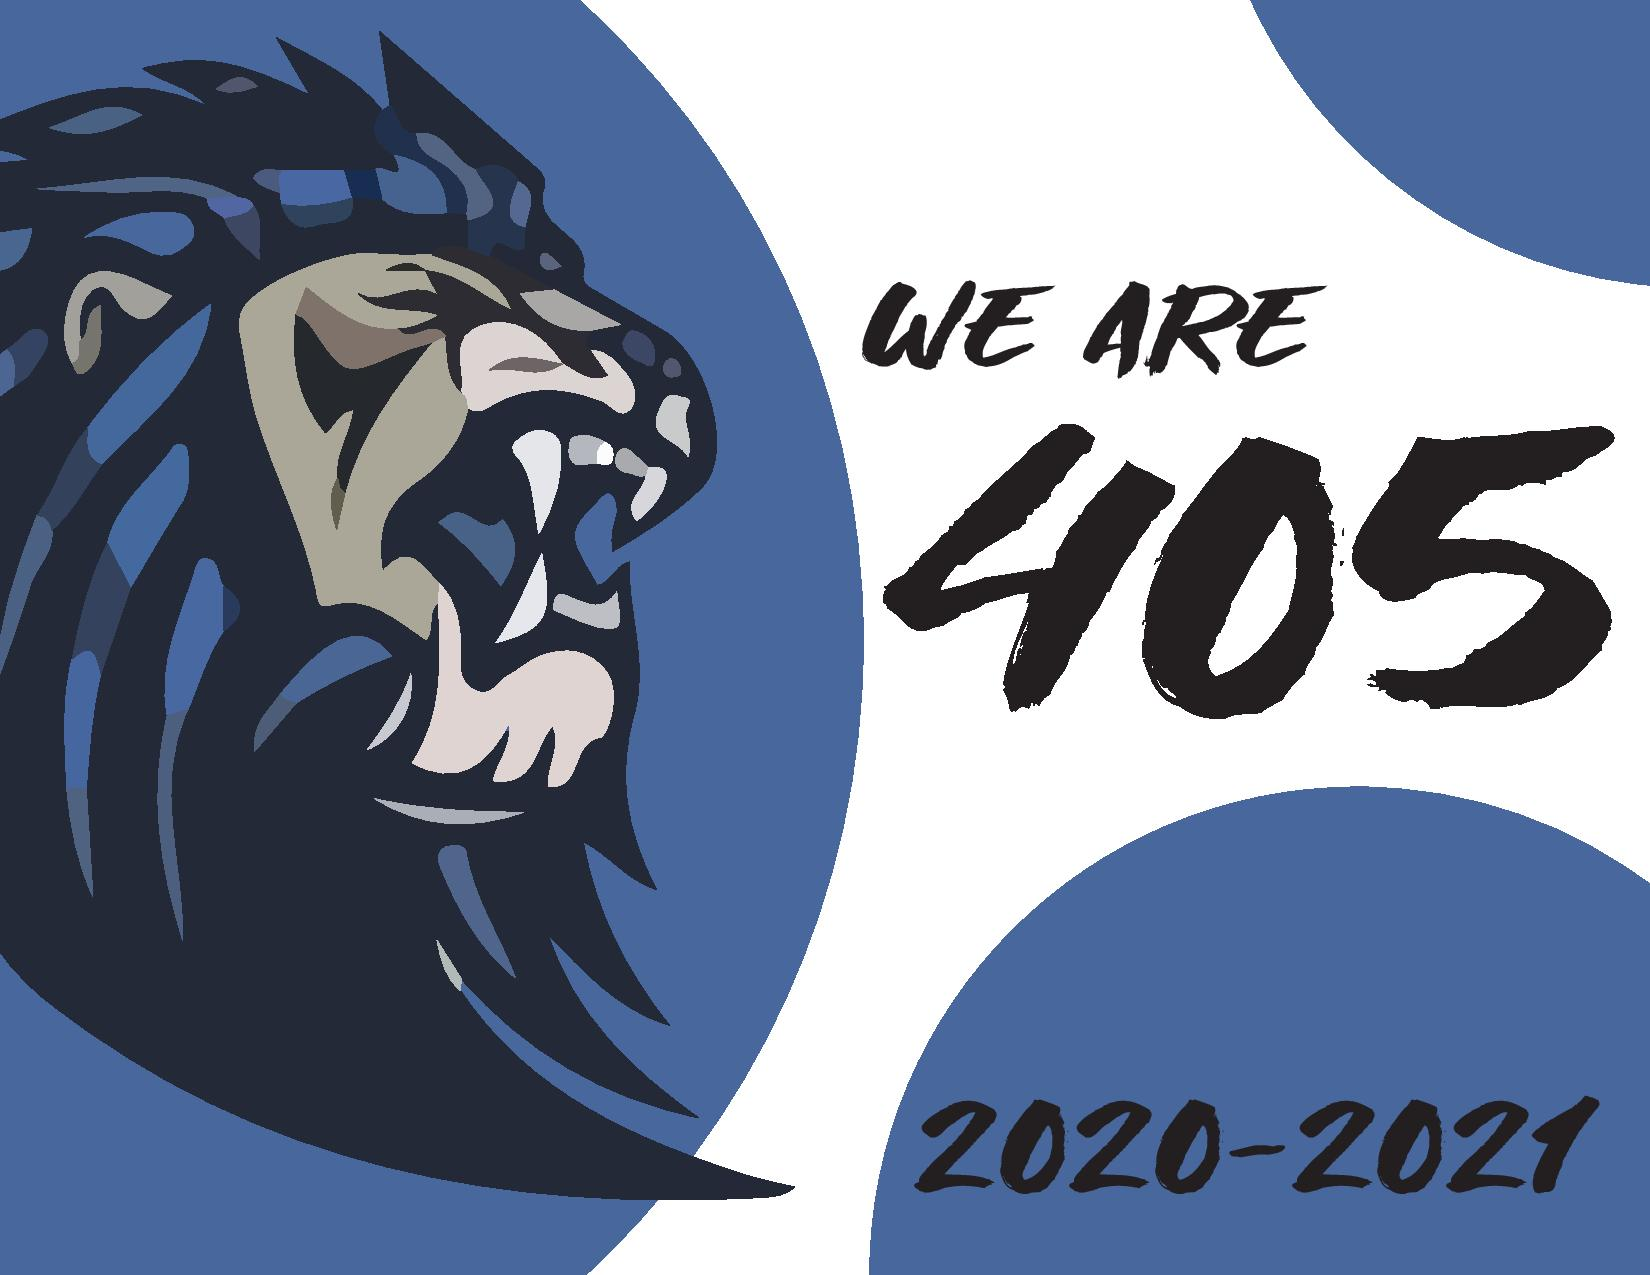 We Are 405, 2020-2021